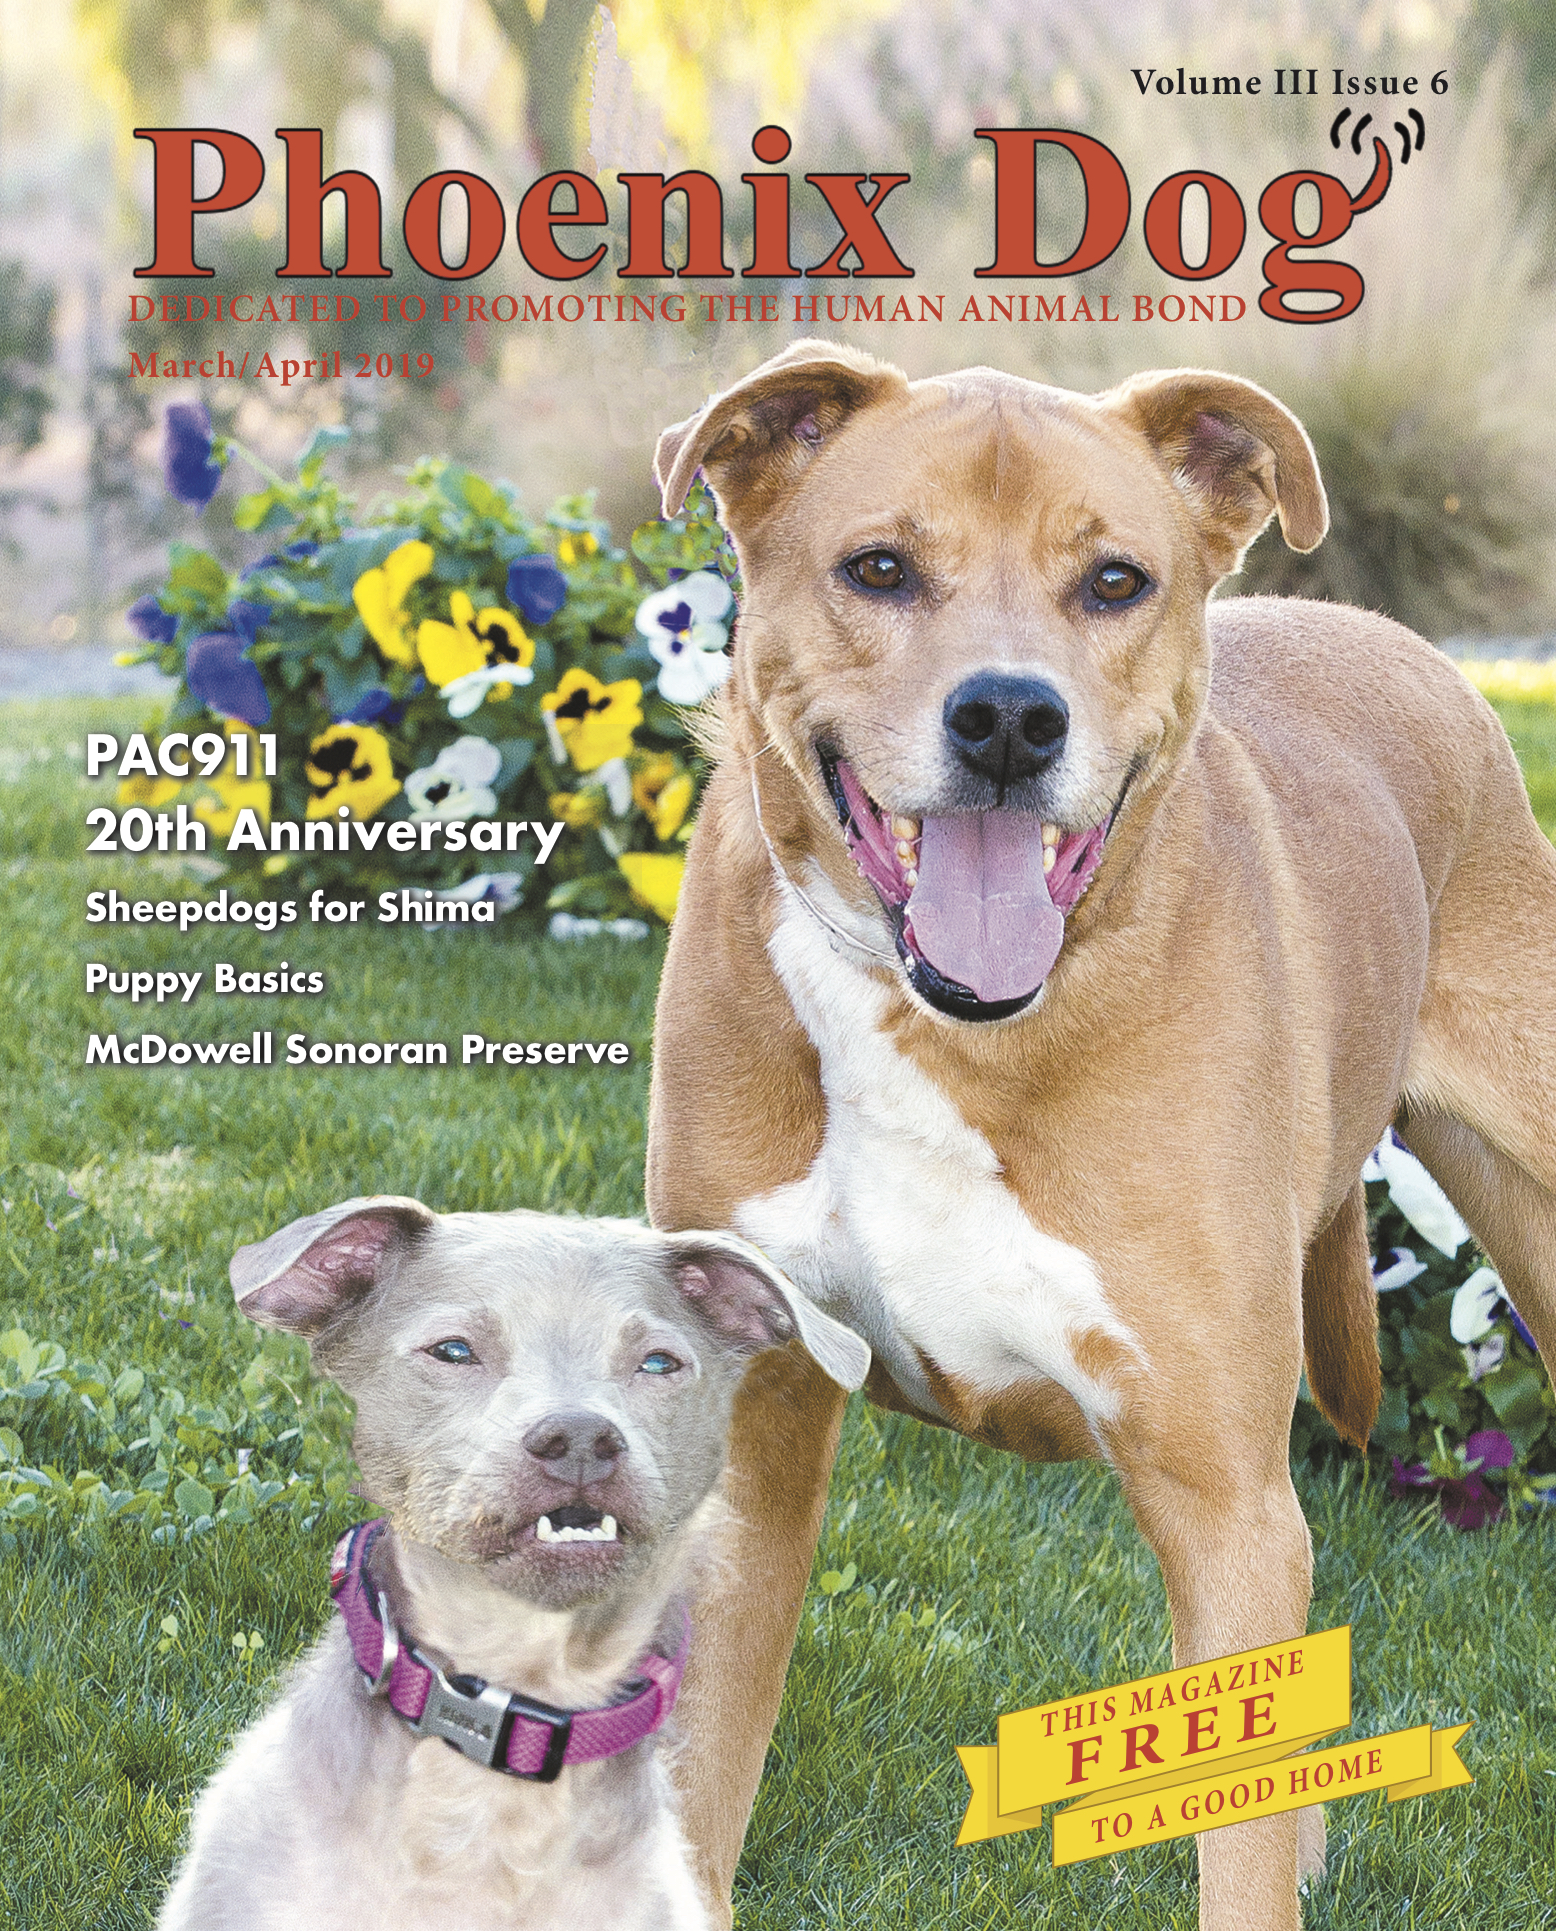 Flash and Hound Phx Dog March April 2019 cover